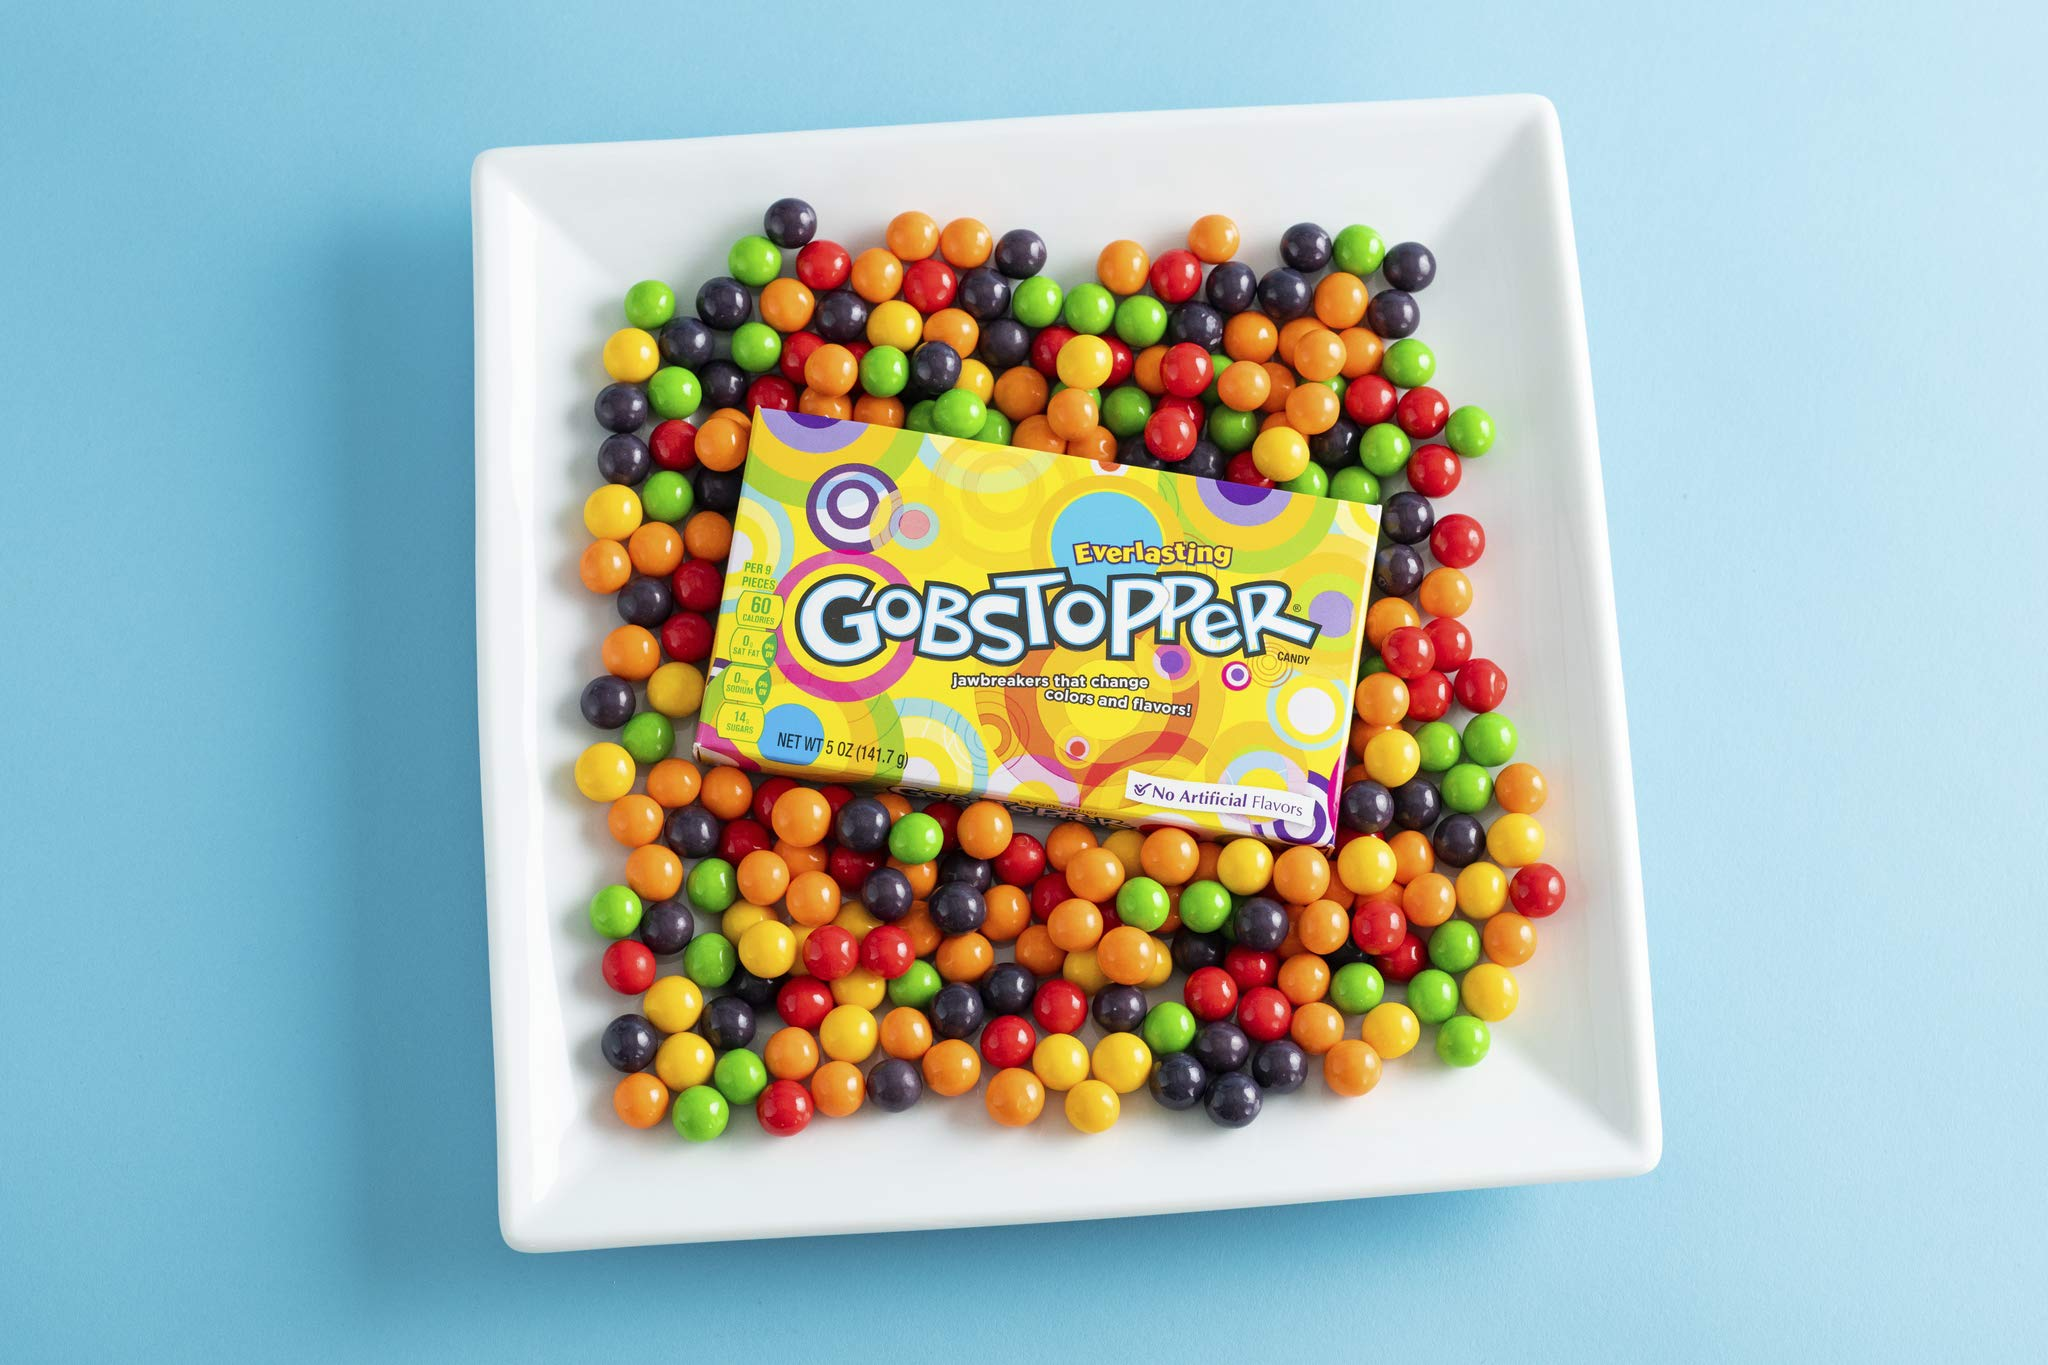 Everlasting Gobstopper Candy, Video Box, 5 Ounce (Pack of 12) by Gobstopper